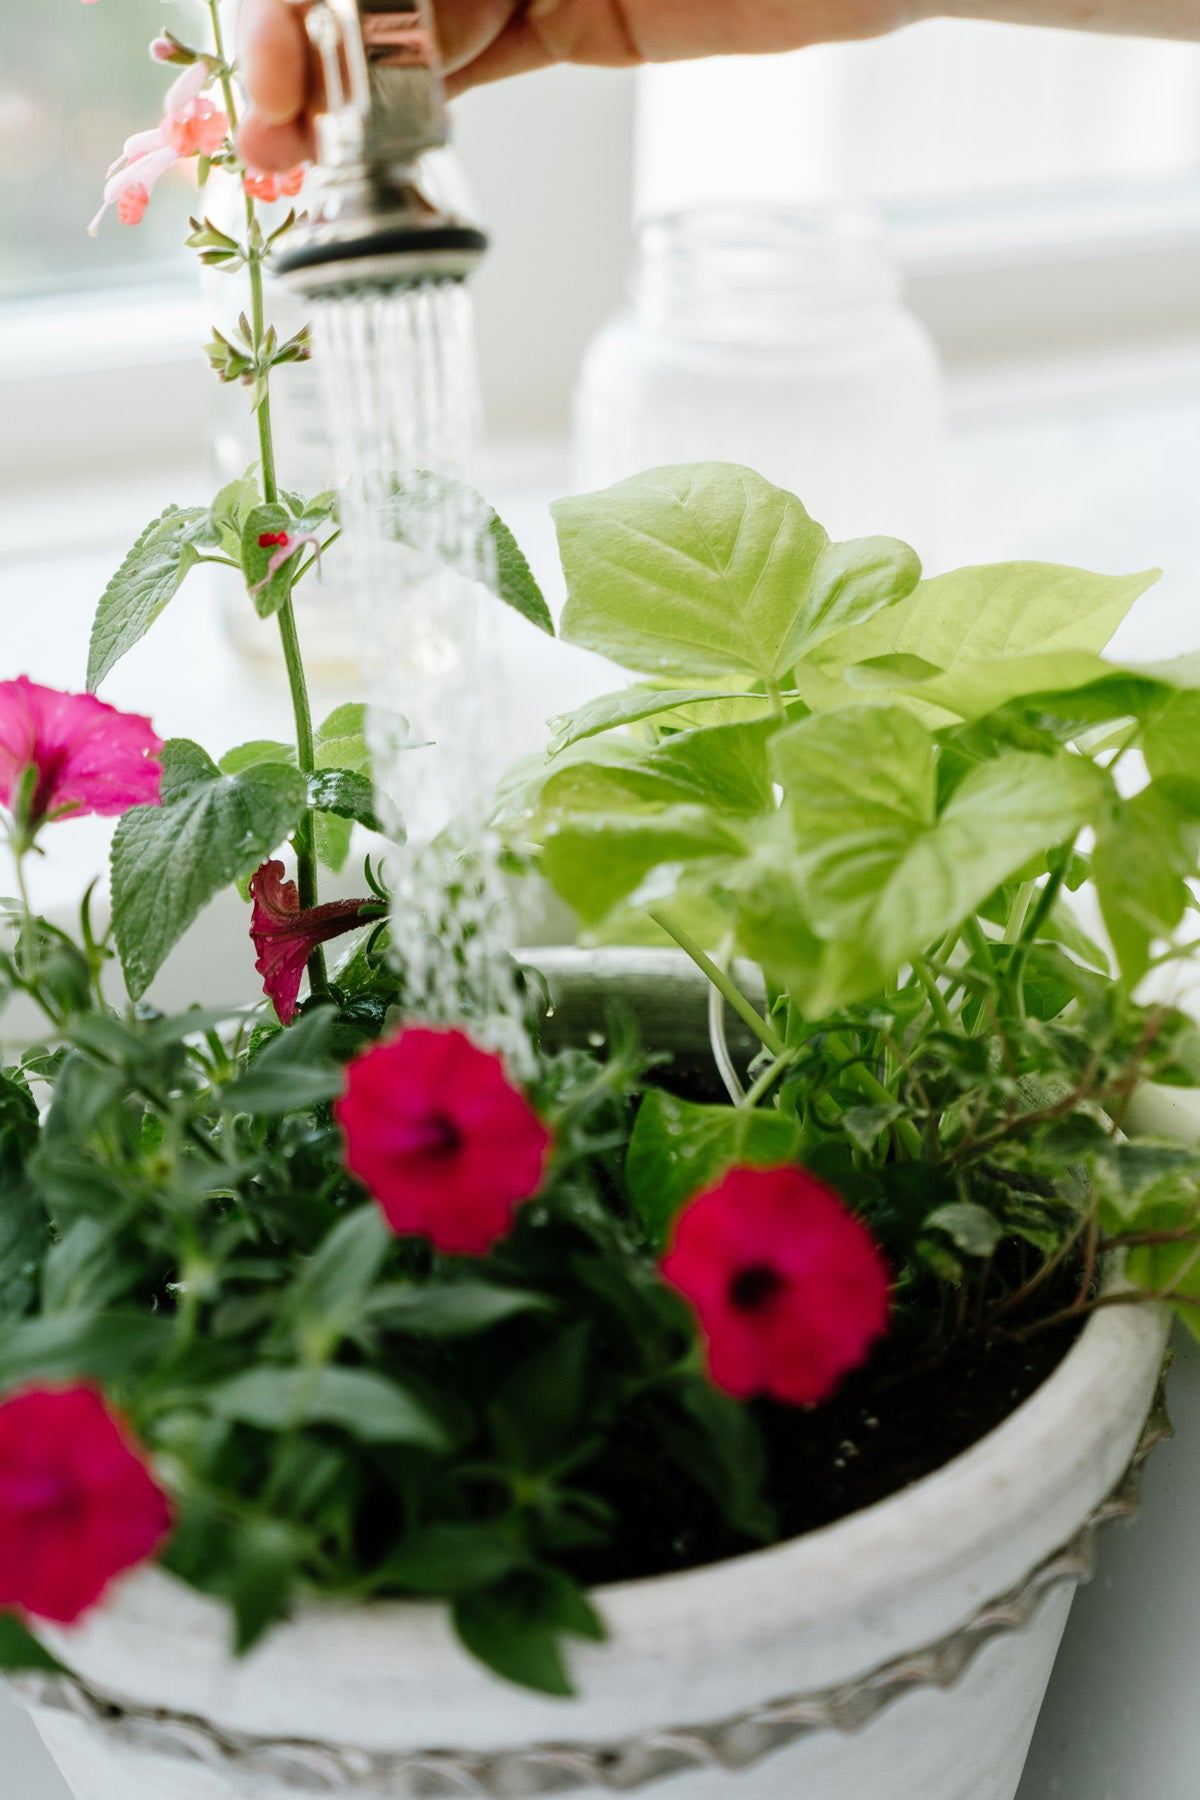 Watering Your Planter Pots and Flowers